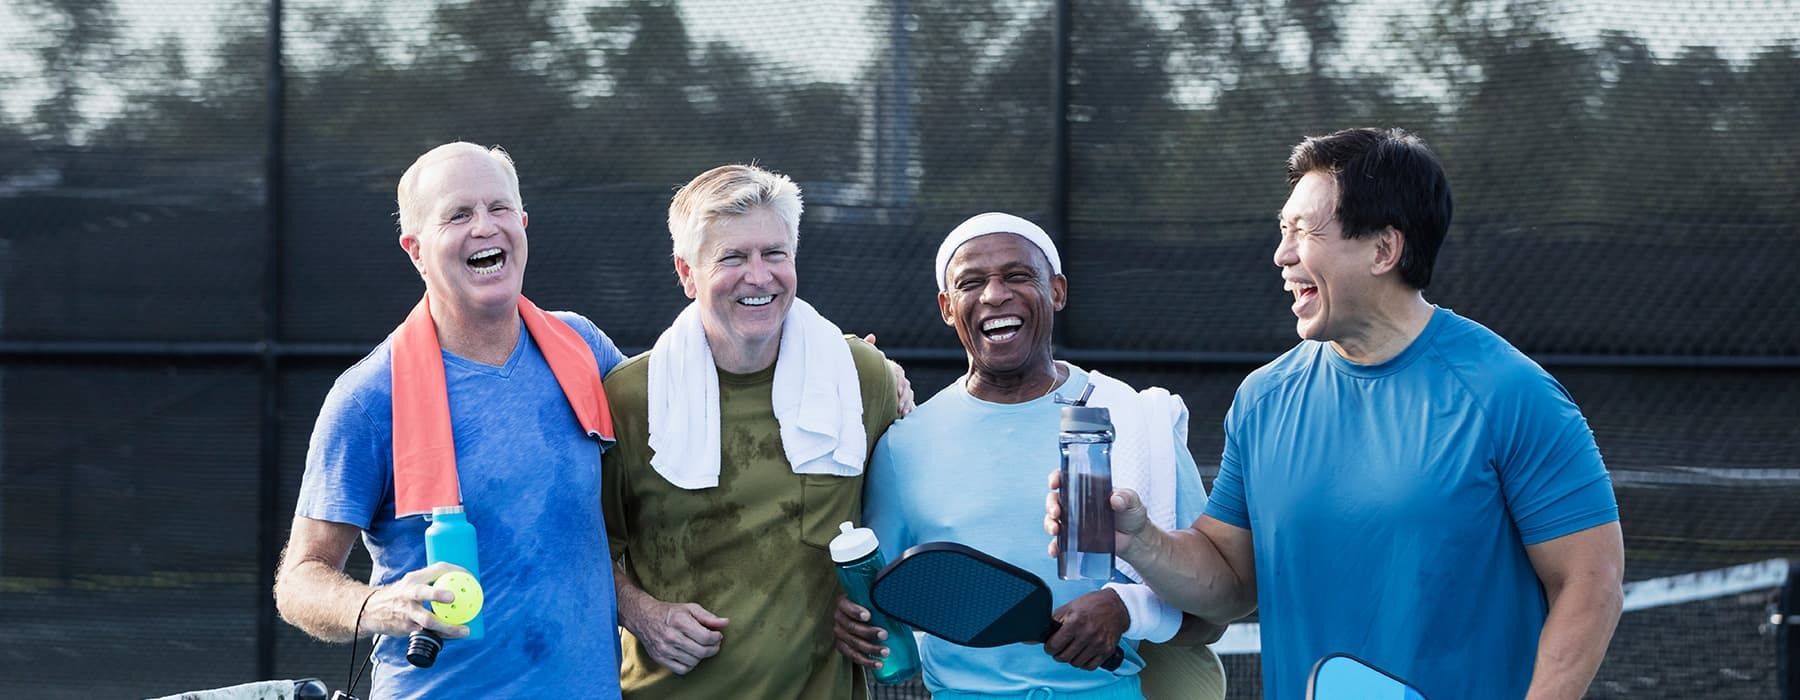 lifestyle image of four men laughing at a tennis court